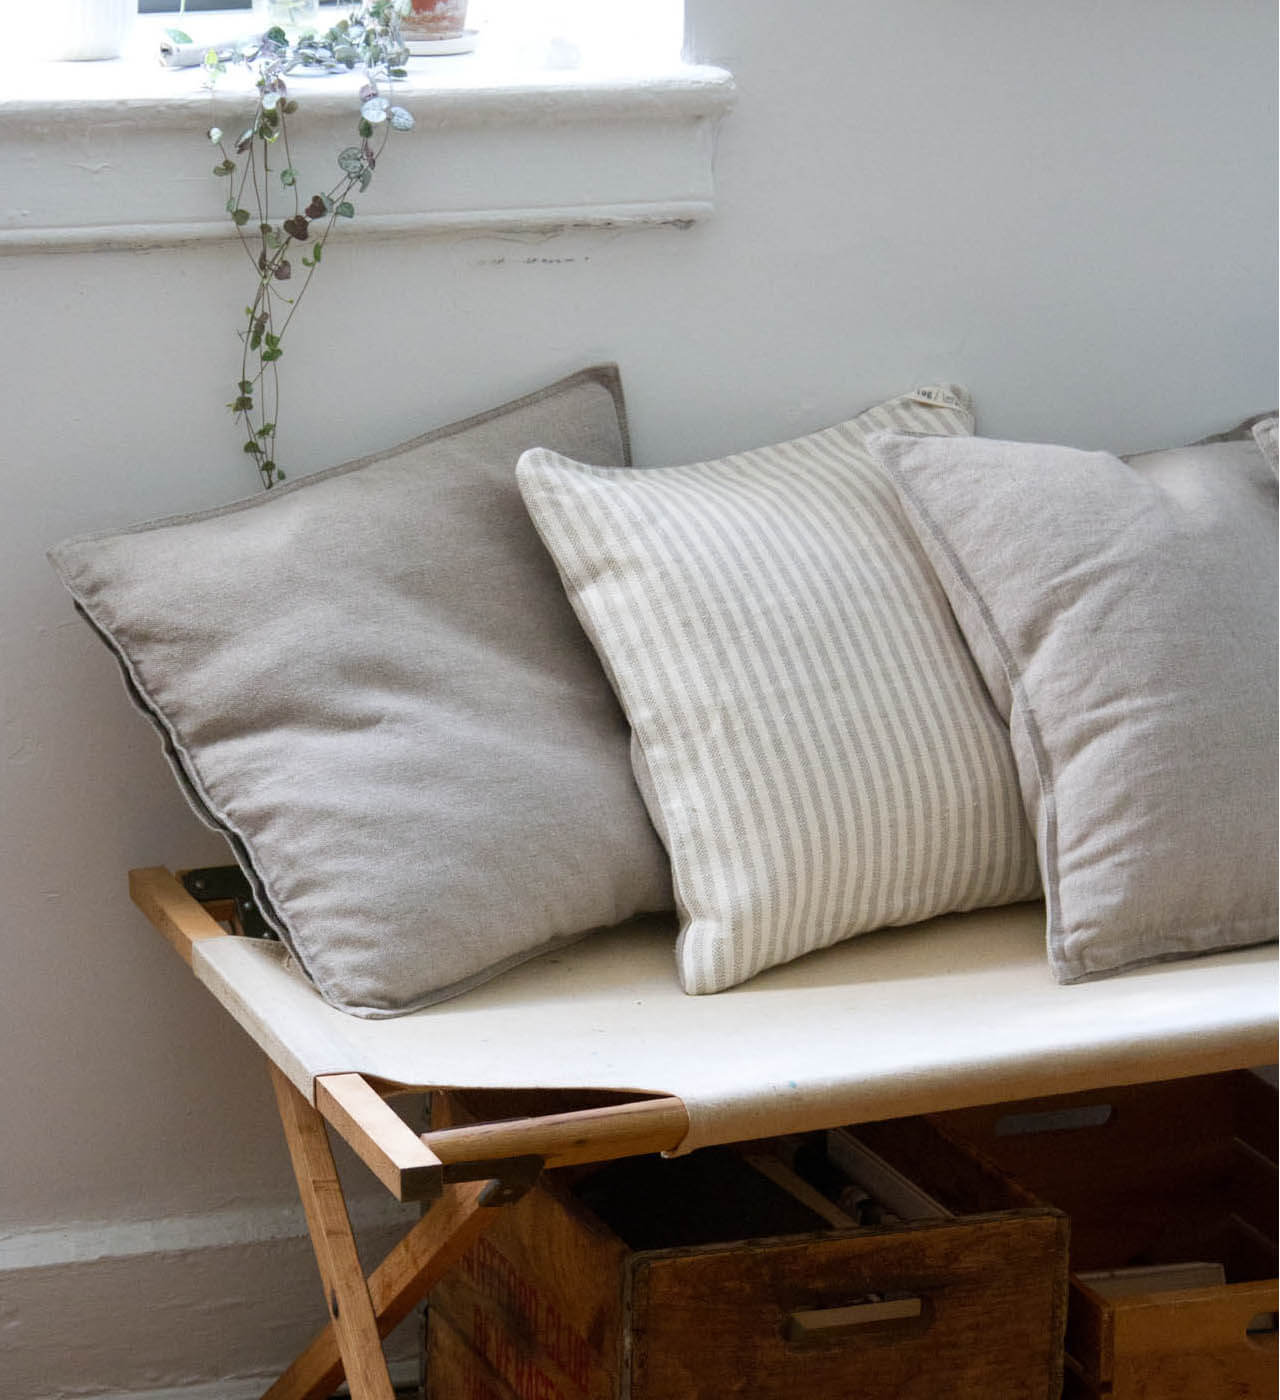 bueno-work-simple-matters-photo-pillows